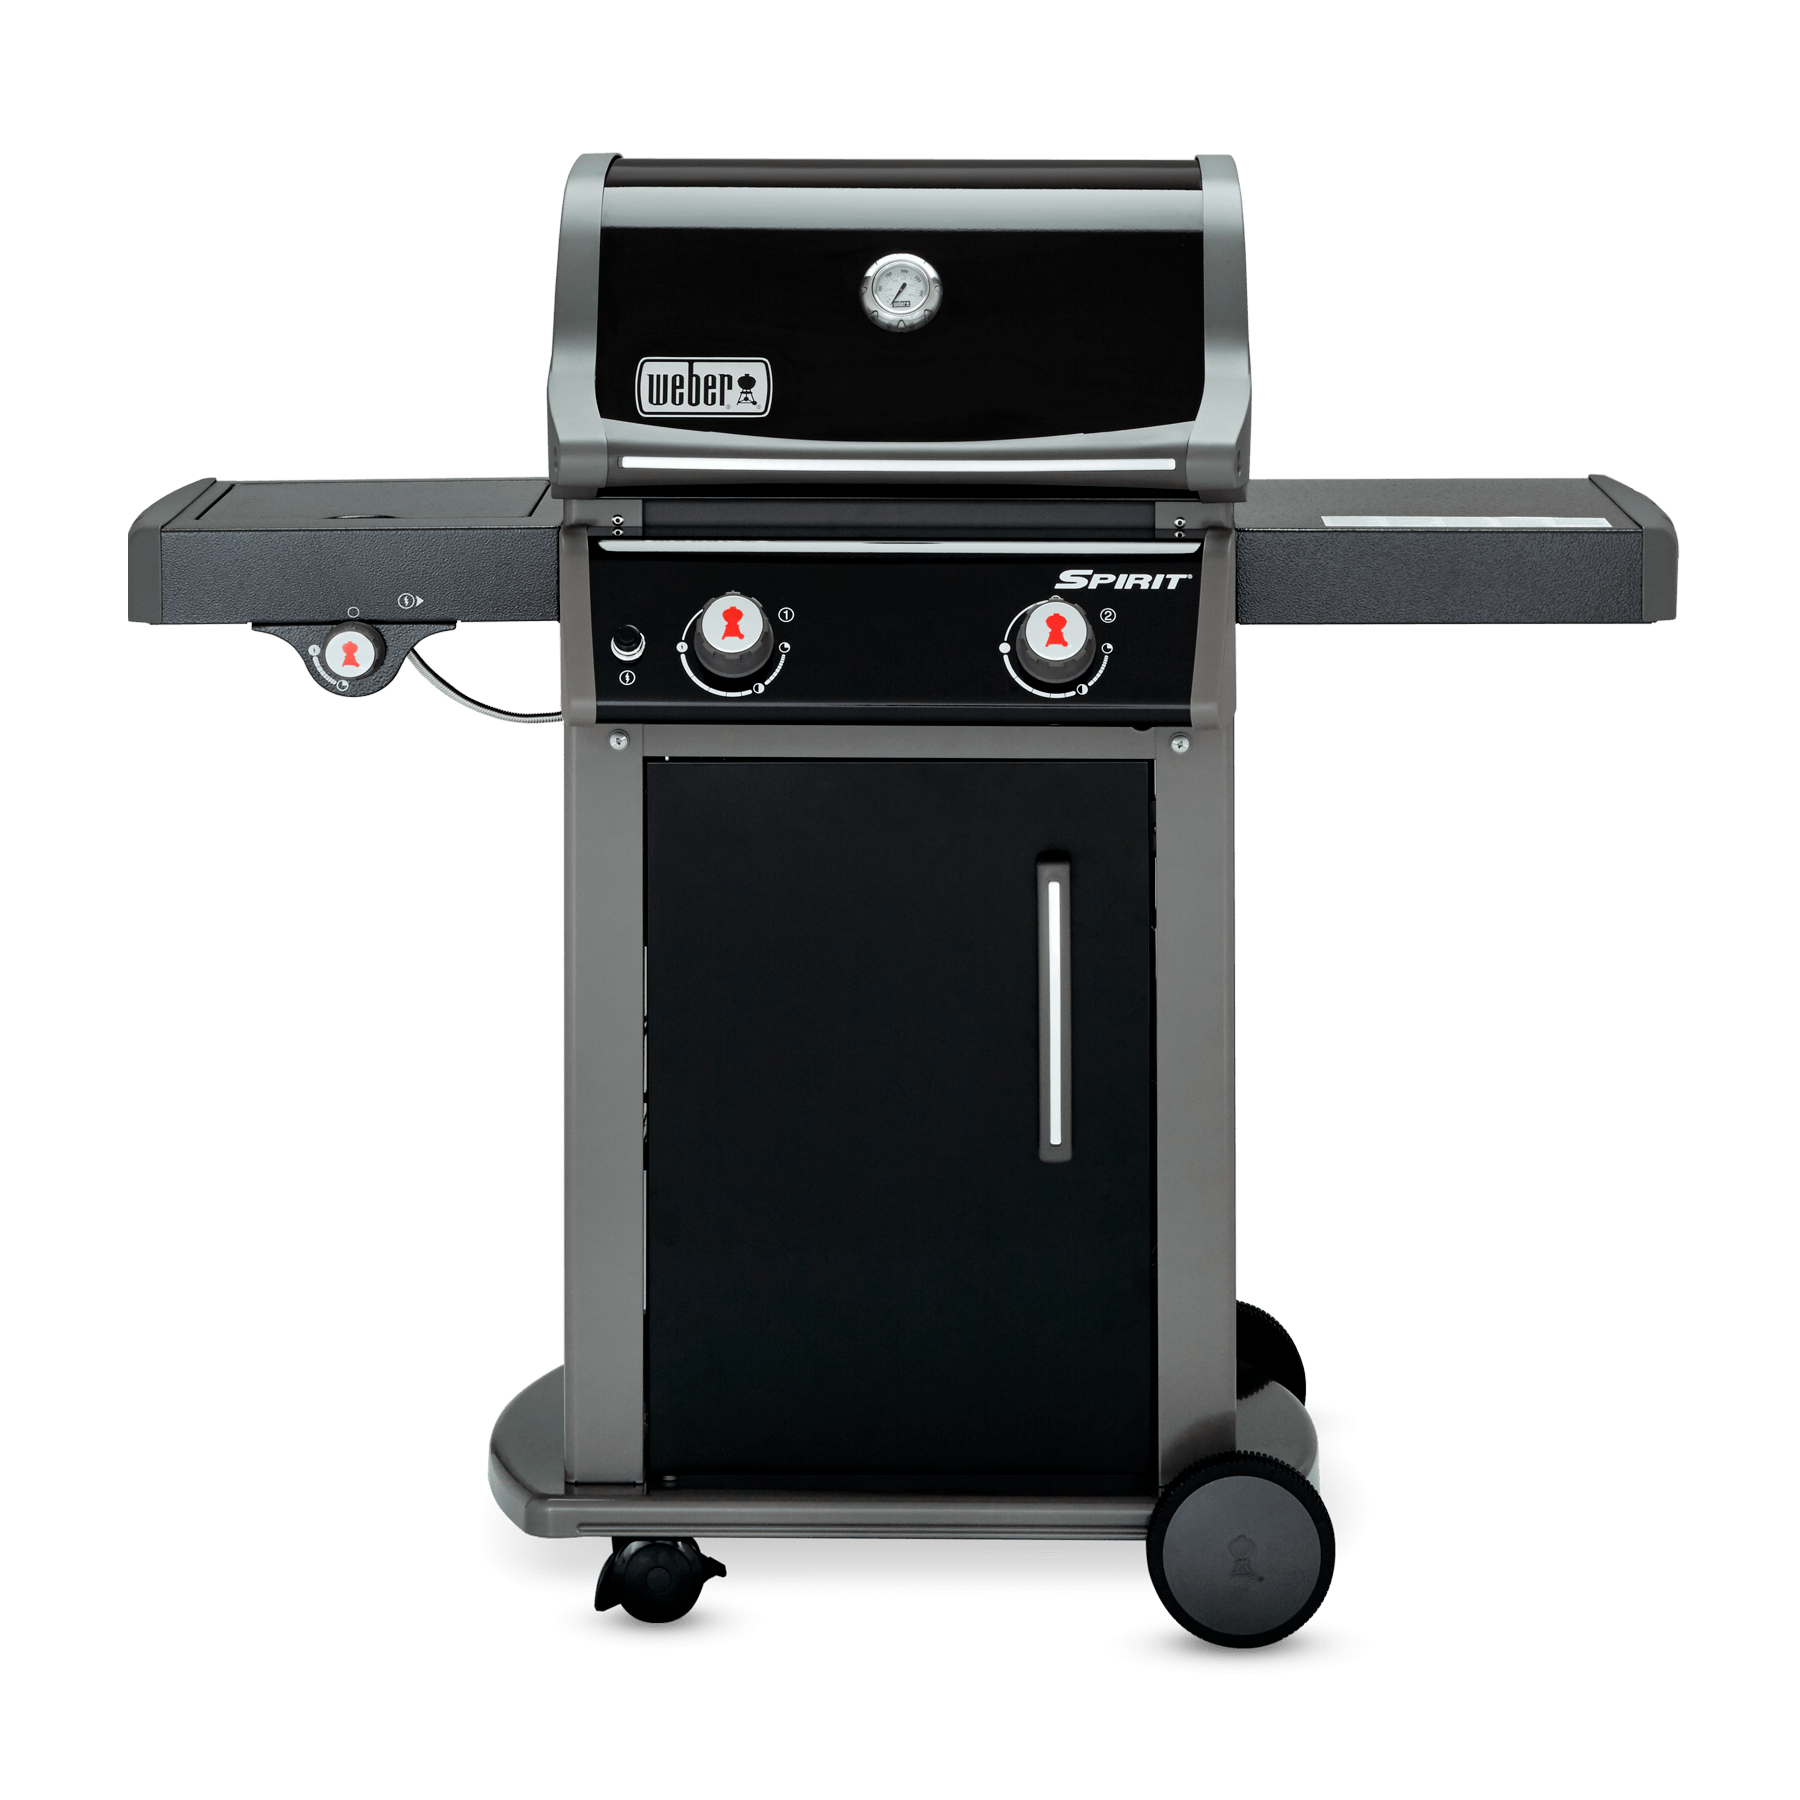 Spirit Original E-220 GBS Gas Barbecue